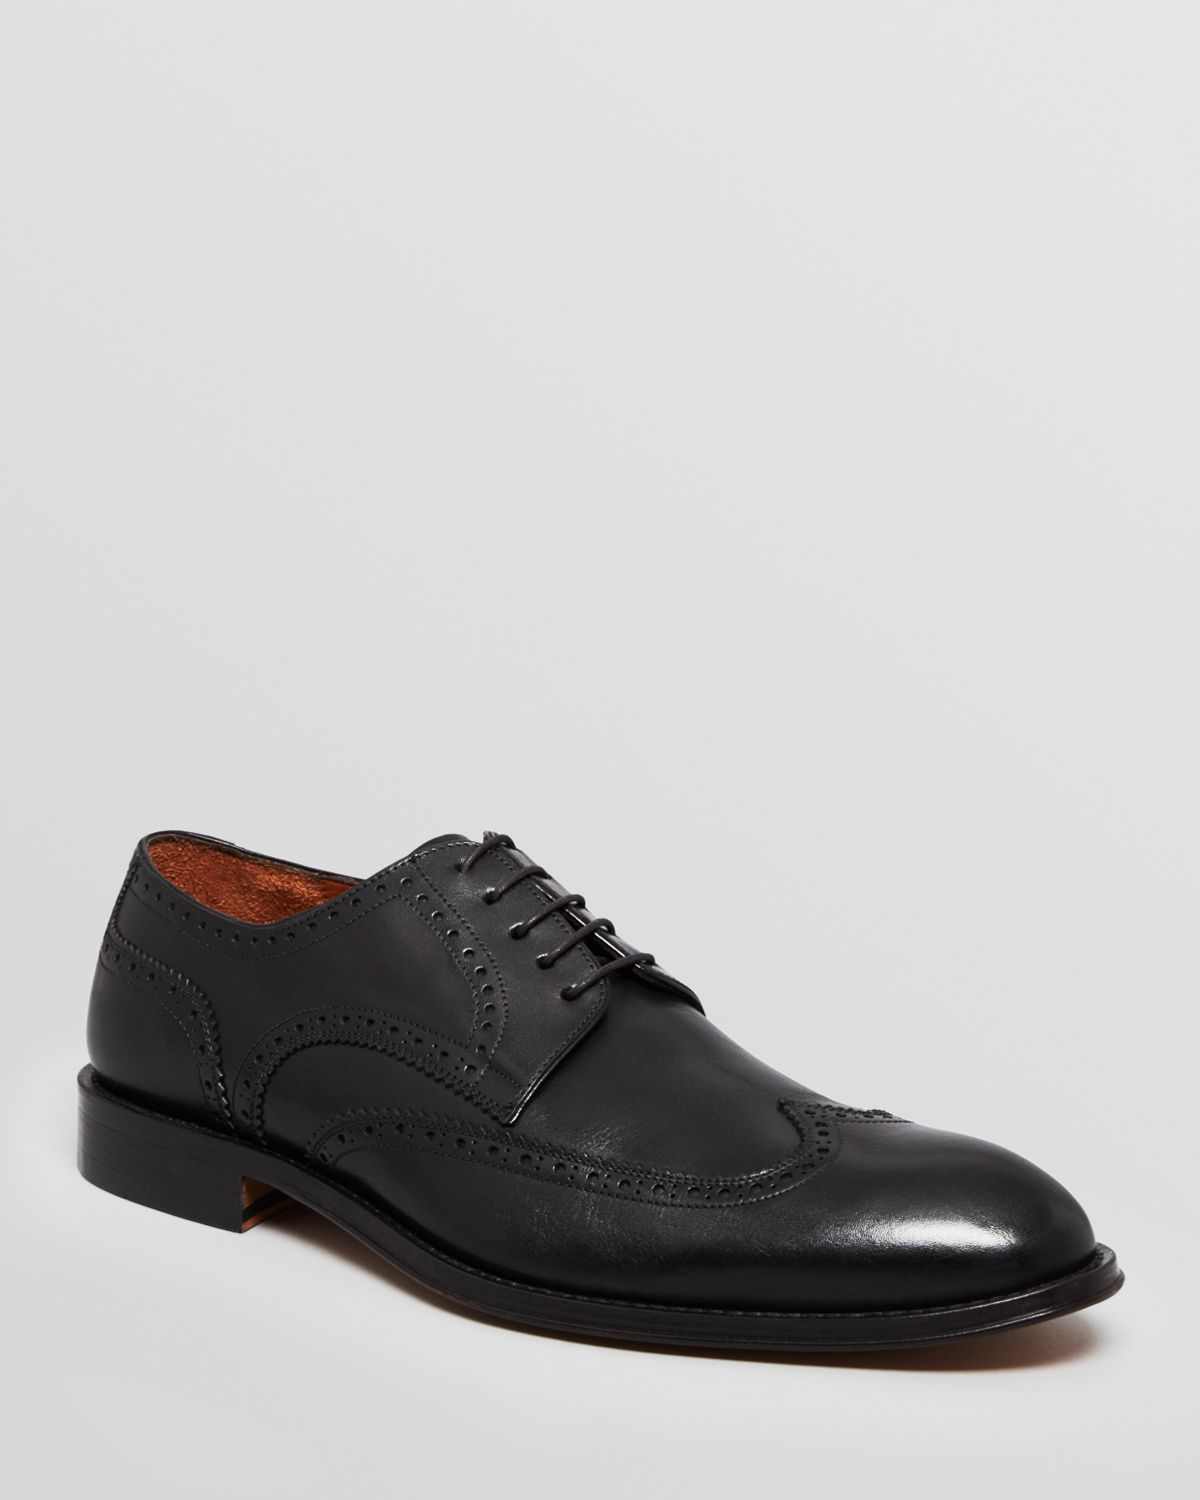 gordon leather wingtip dress shoes powell in black